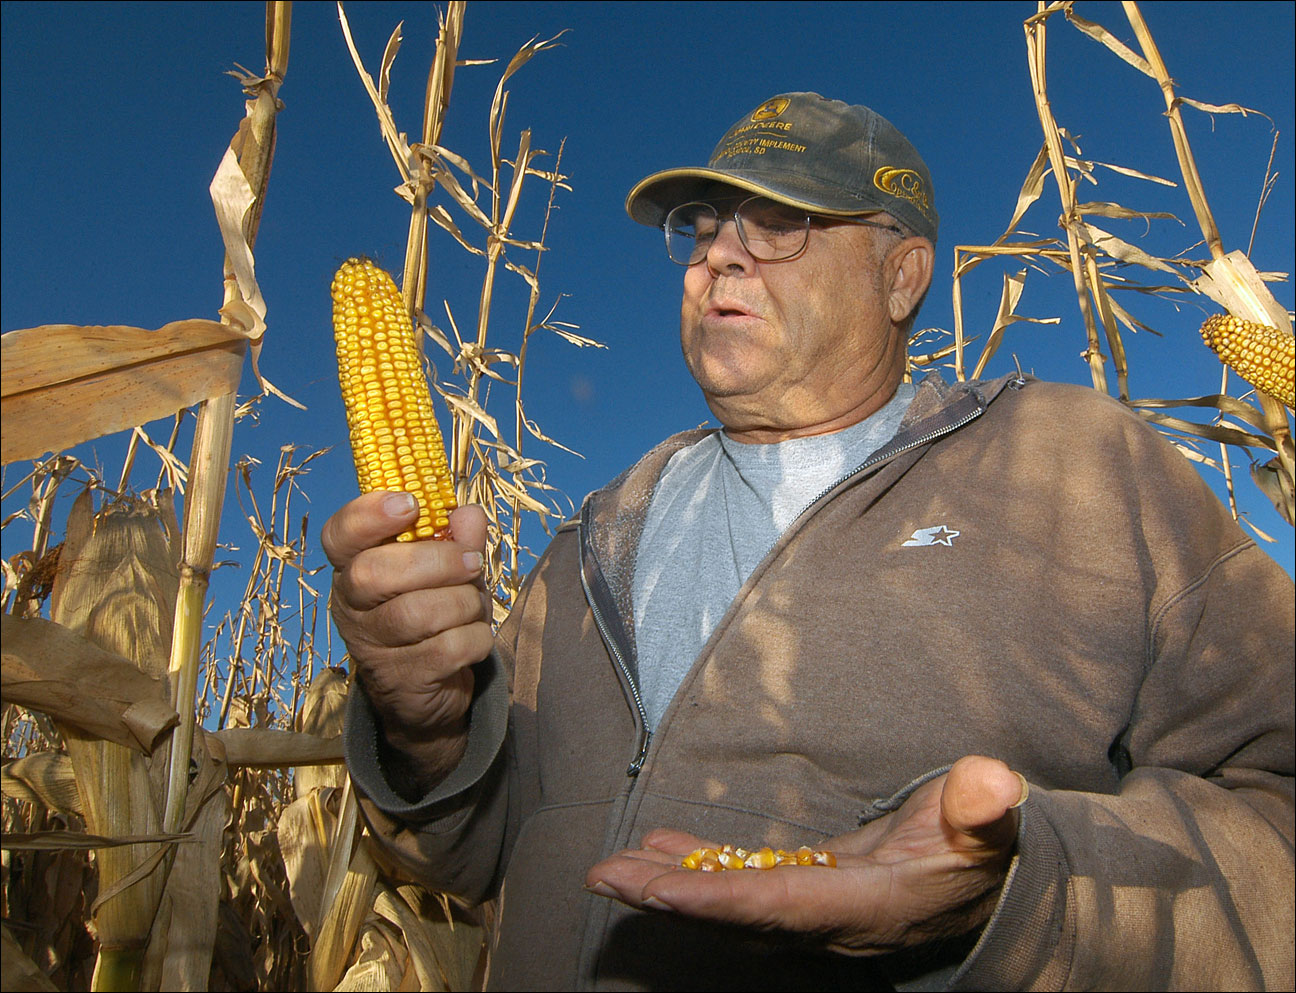 Robert Malsom checks corn in one of his fields near Roscoe, S.D. Malsam nearly went broke in the 1980s when corn was cheap. So now that prices are high and he can finally make a profit, he's not about to apologize for ripping up prairieland to plant corn. (AP Photos/Doug Dreyer)